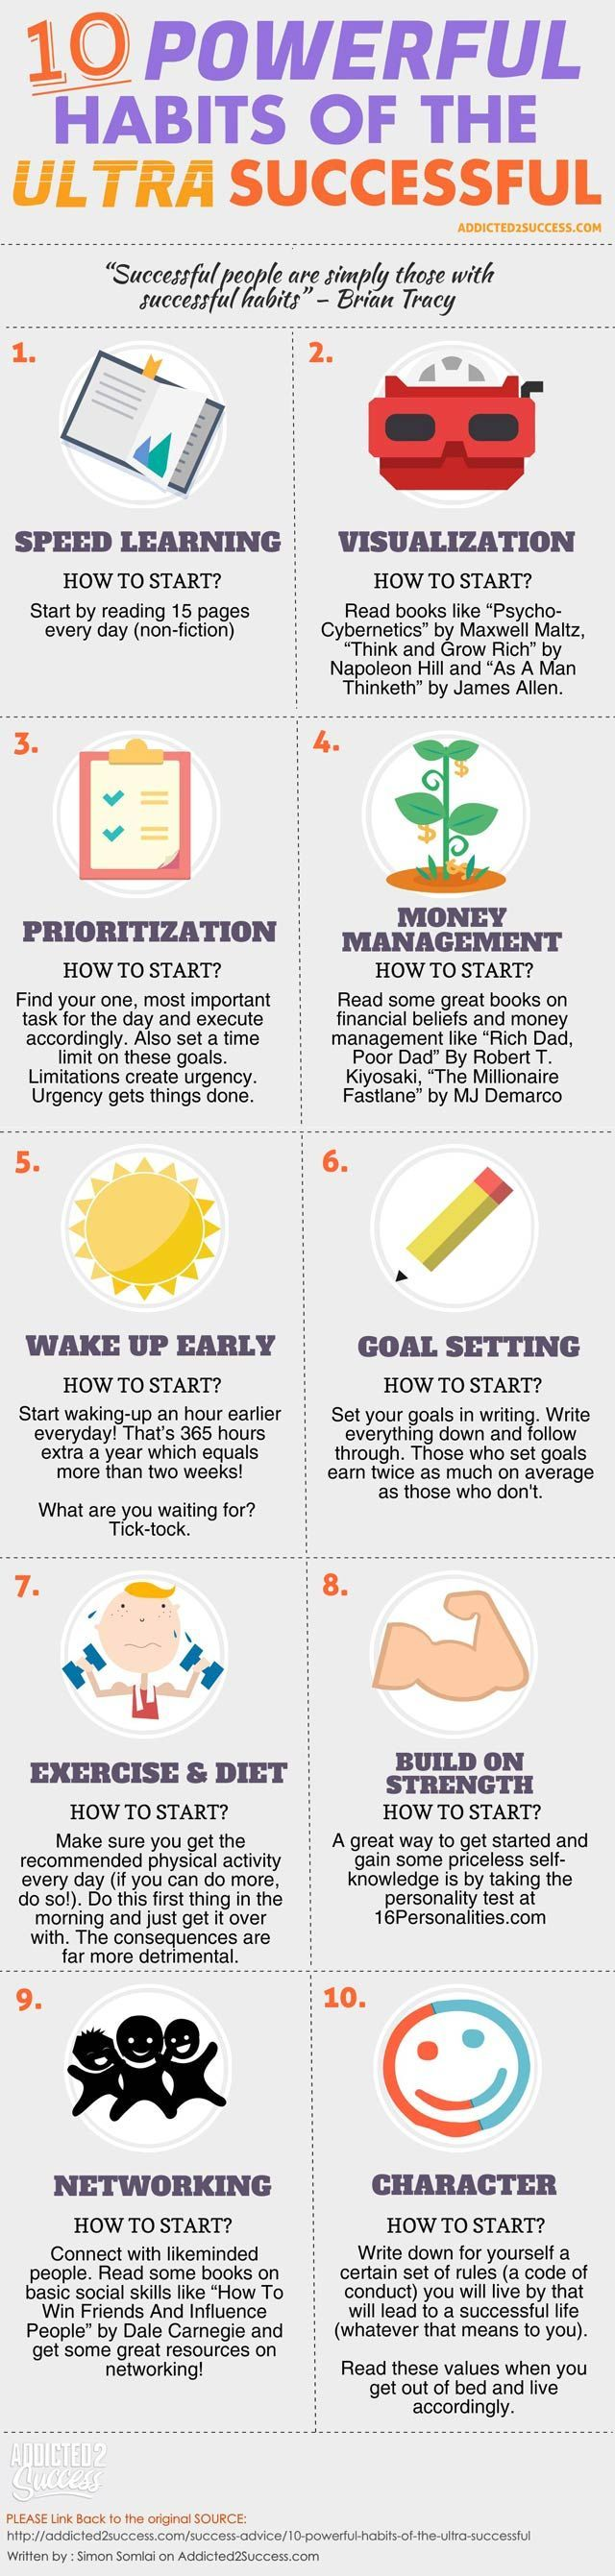 10 Powerful Habits of Ultra Successful People http://www.lifehack.org/articles/productivity/10-powerful-habits-ultra-successful-people.html